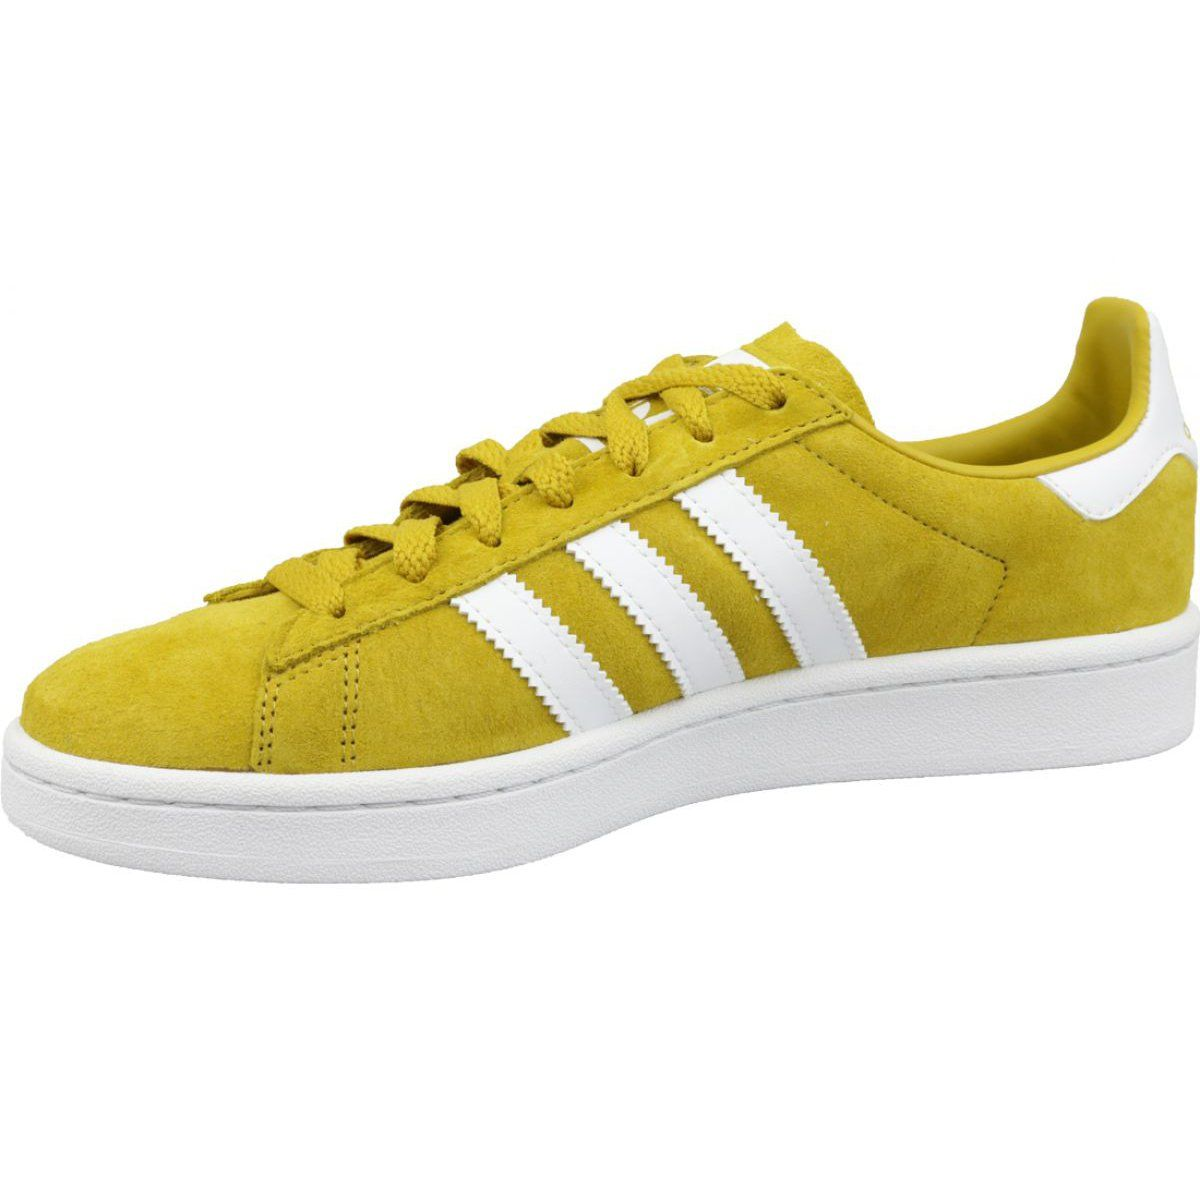 Buty Adidas Originals Campus M Cm8444 Zolte Adidas Outfit Shoes Adidas Shoes Outlet Adidas